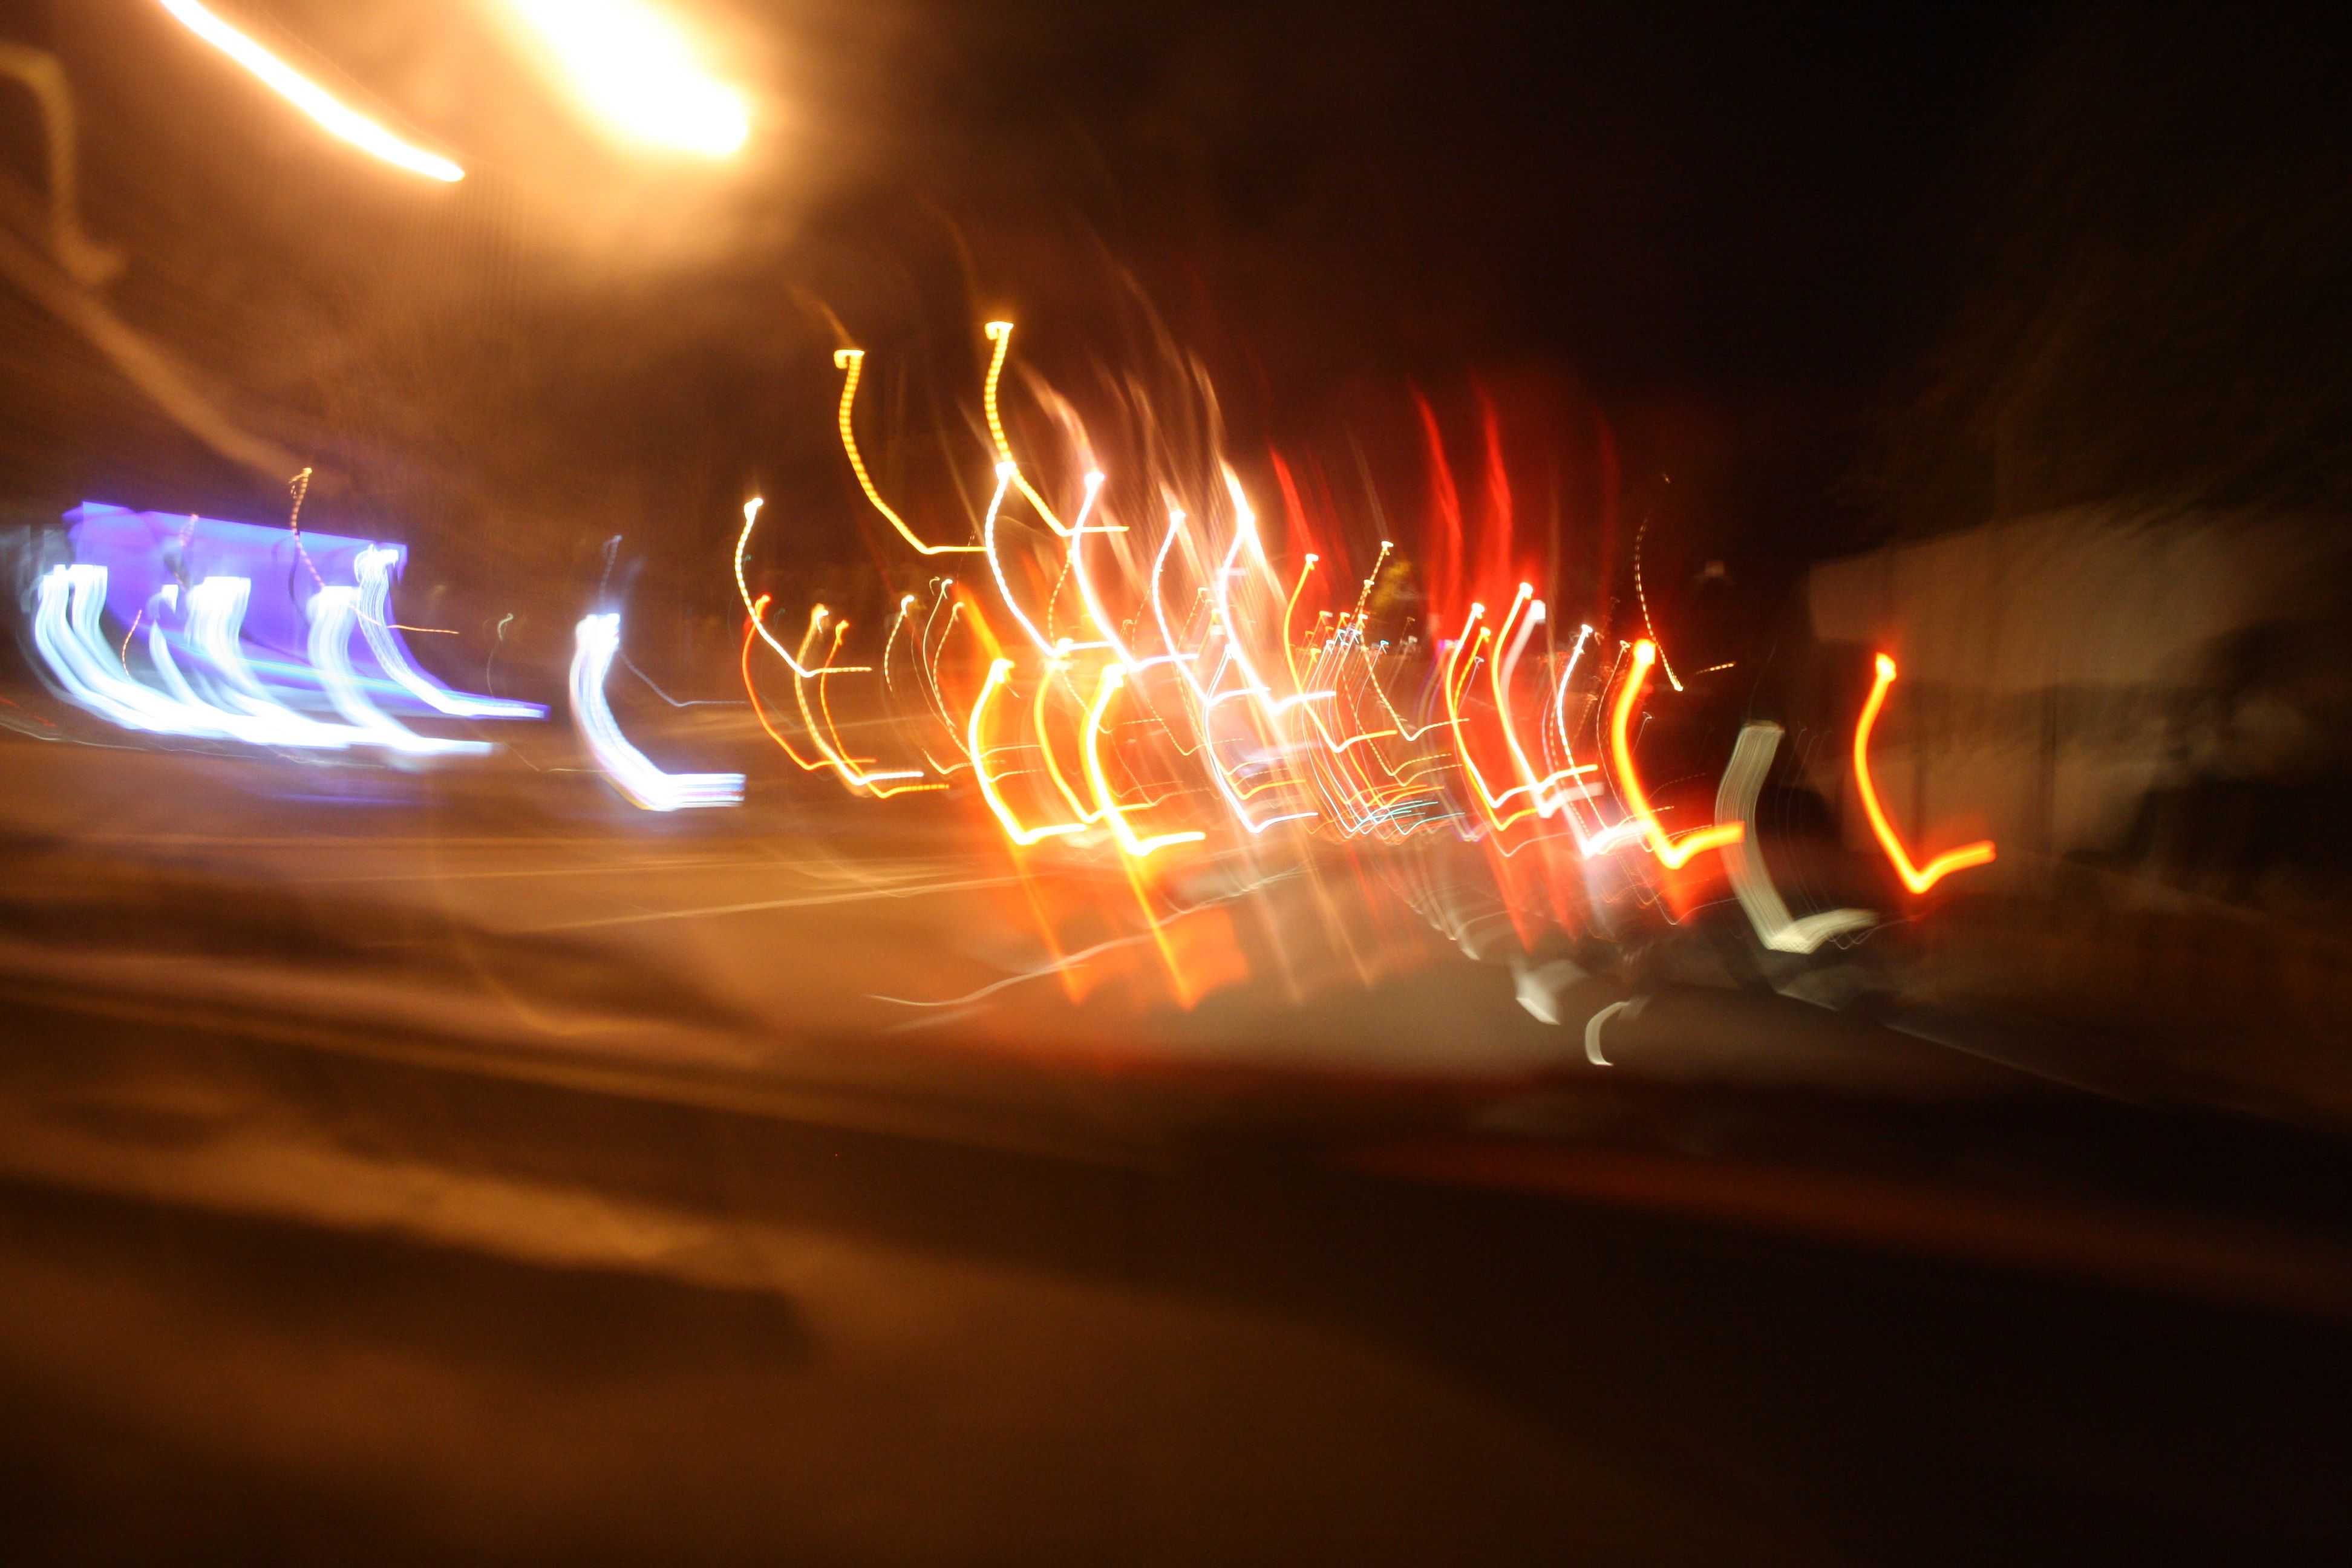 messing with the shutter speed and jerking camera around in the car when i first got it.